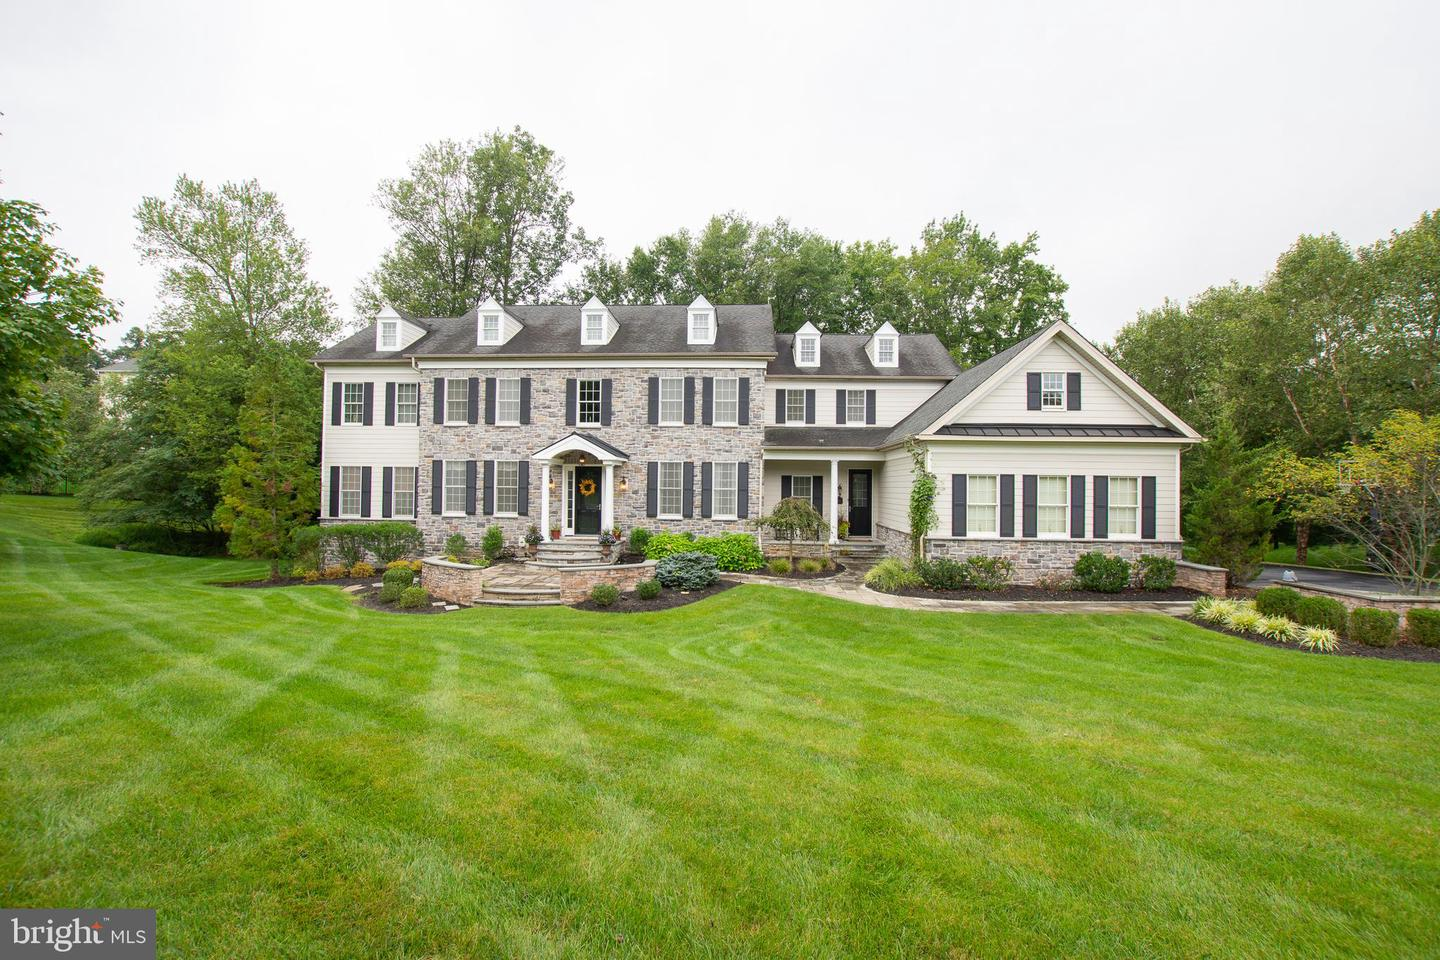 Malvern Bank Home of the Week: 5-bed, 5.5-bath Stone Front Traditional in Chadds Ford